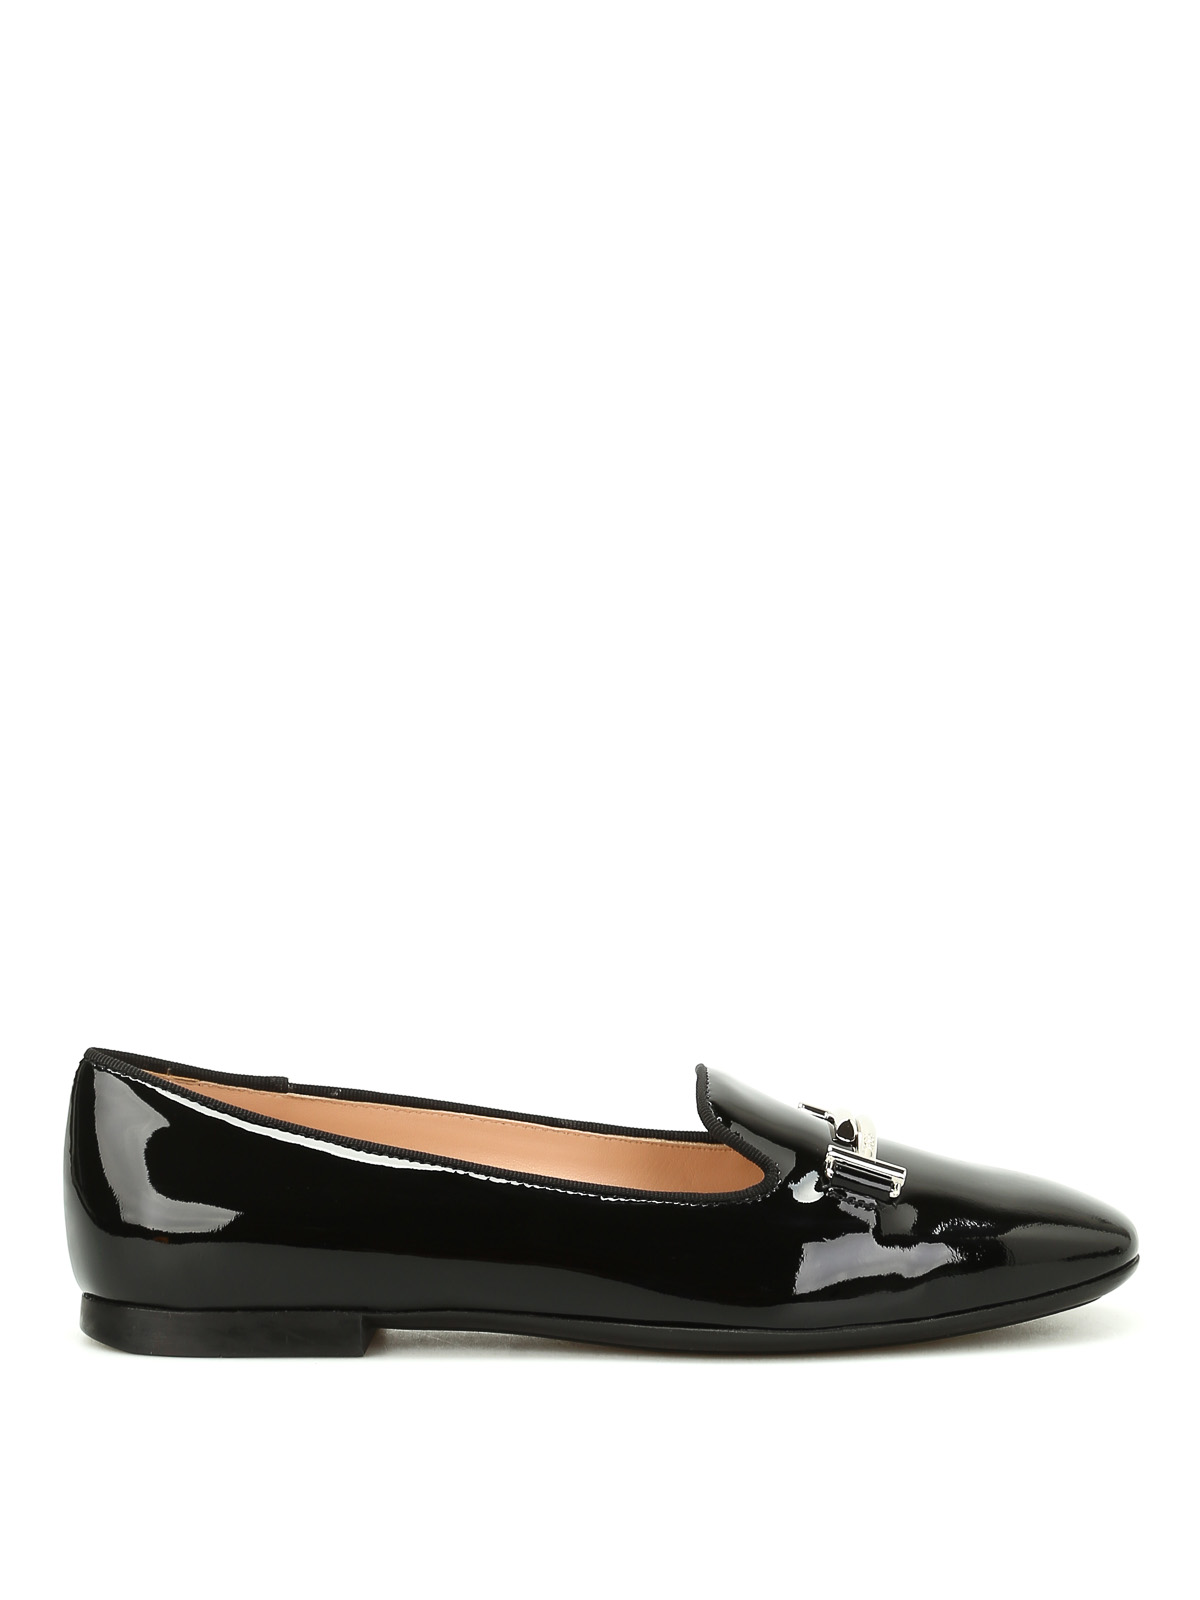 dc69ac255 Double T patent leather slippers - TOD'S - Paolo Fiorillo